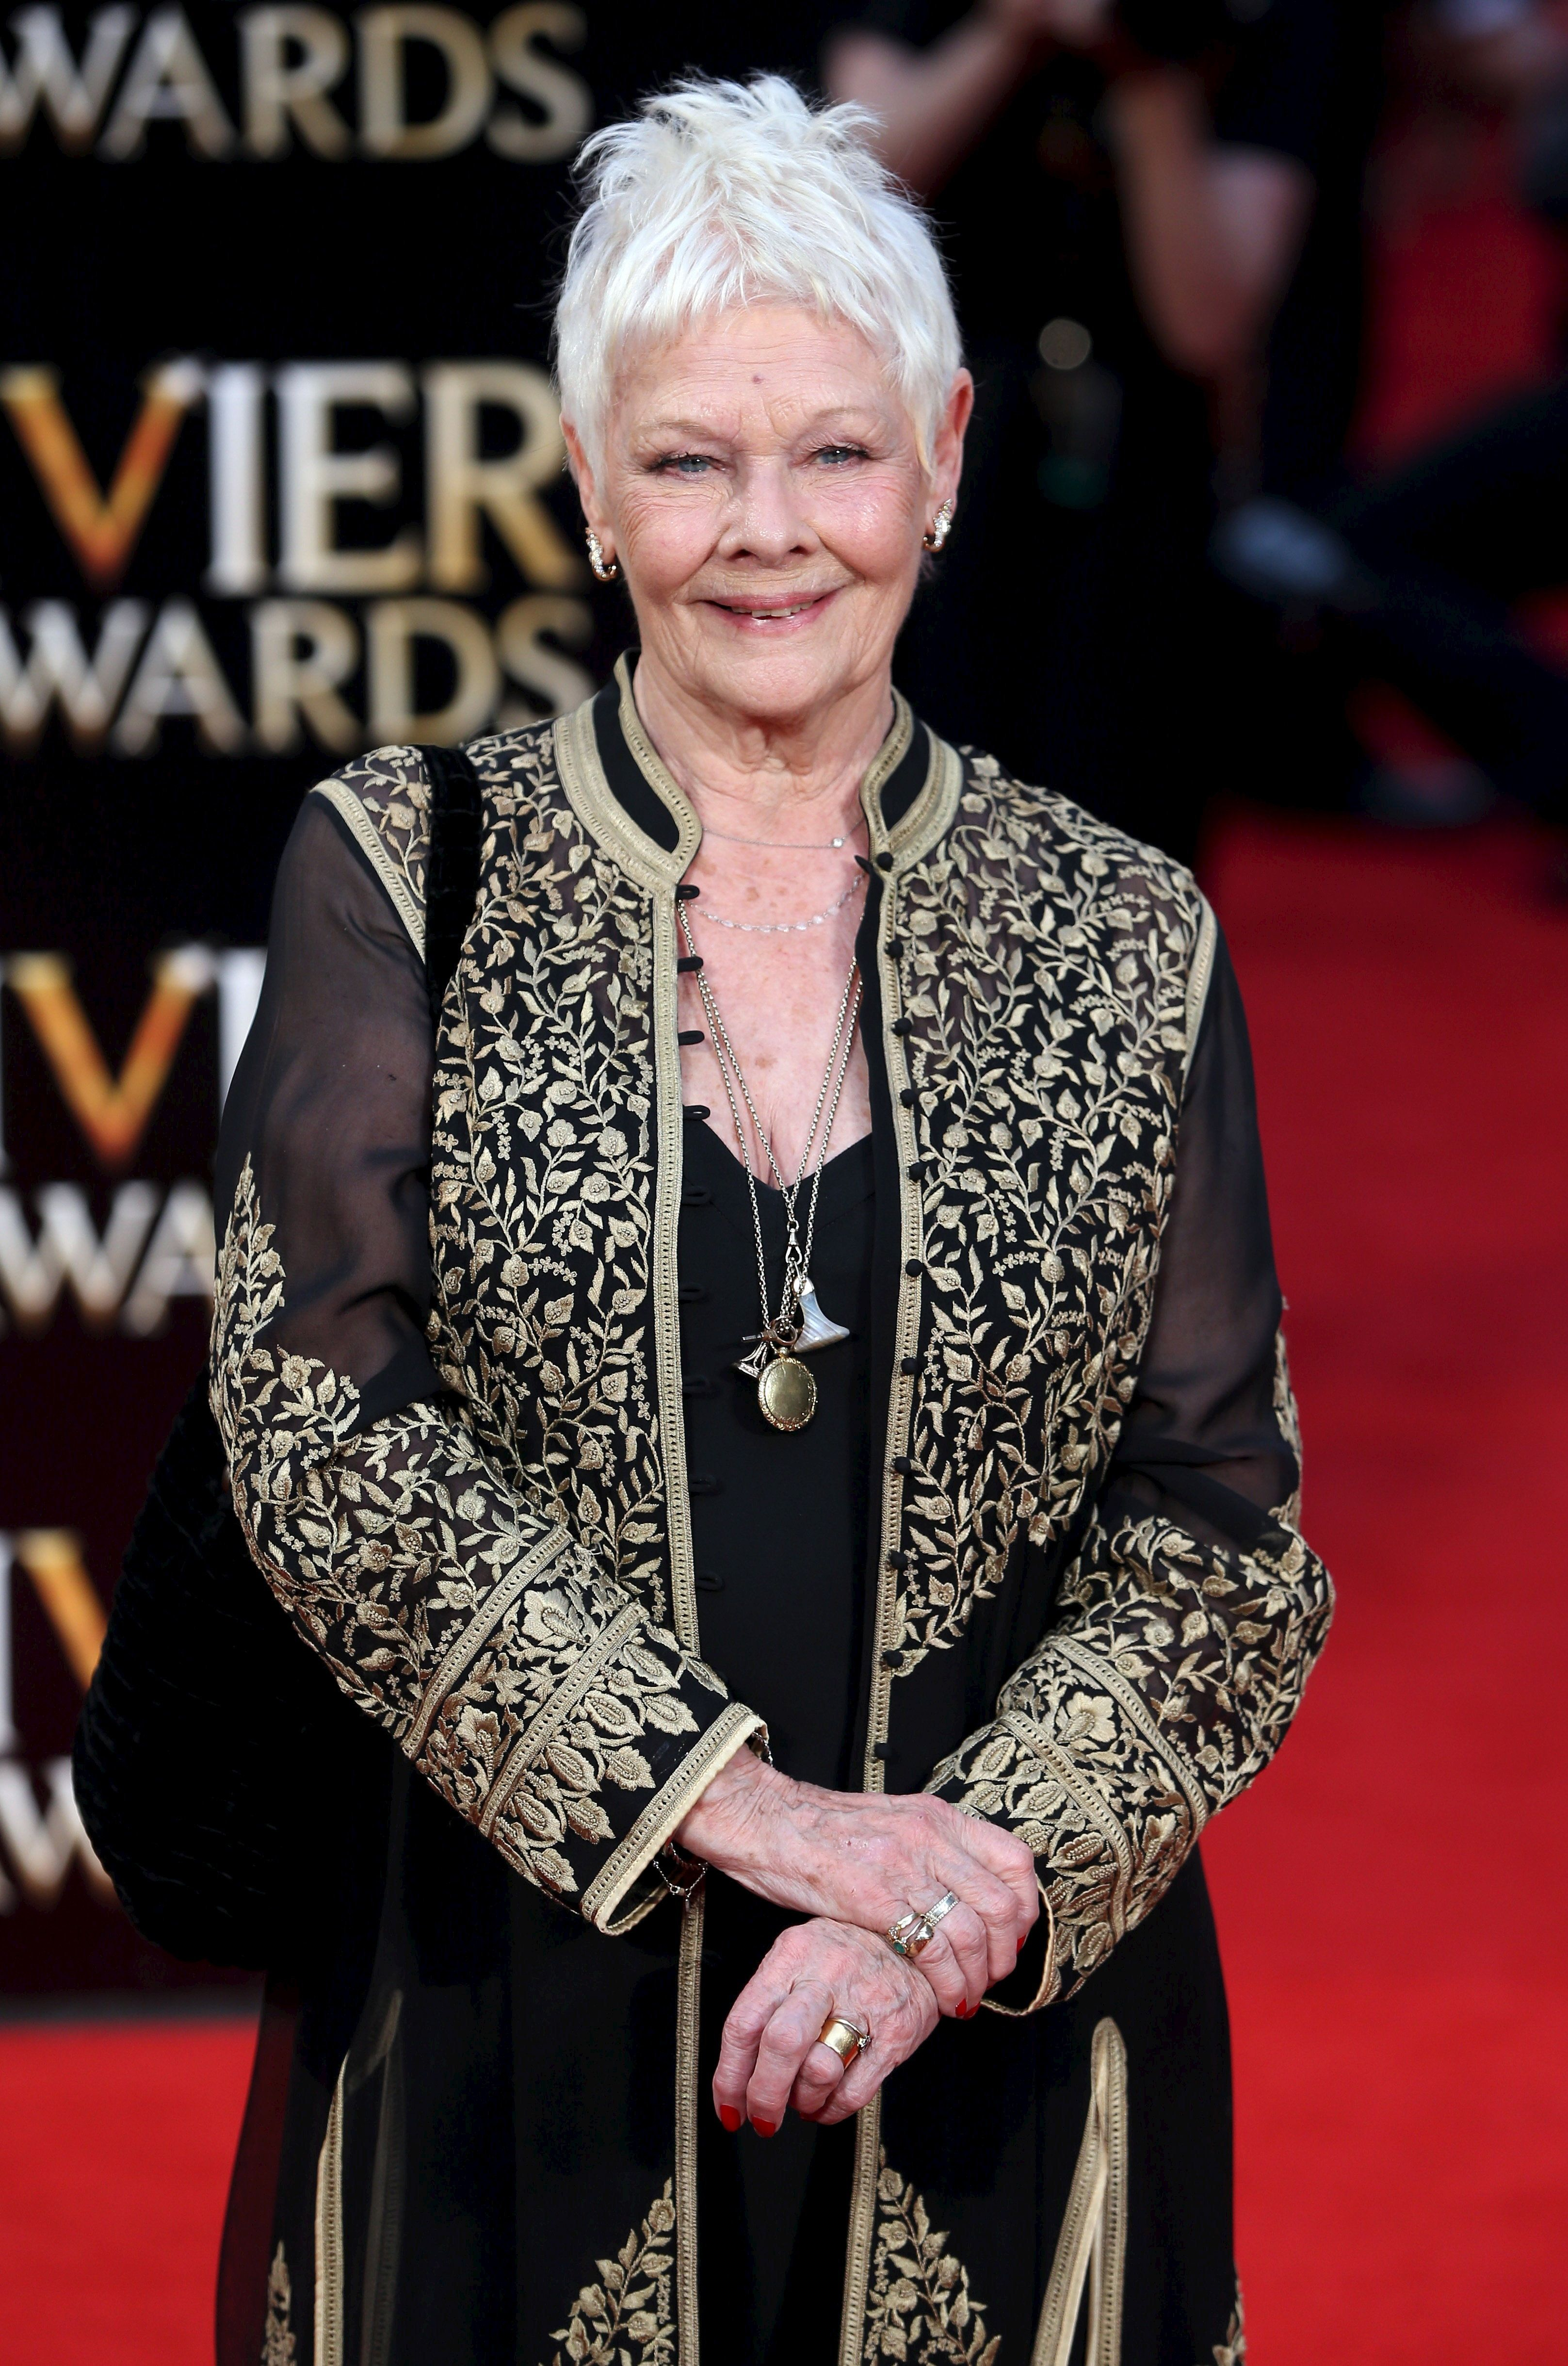 Judi Dench Celebrated Her 81st Birthday With Her First Ever